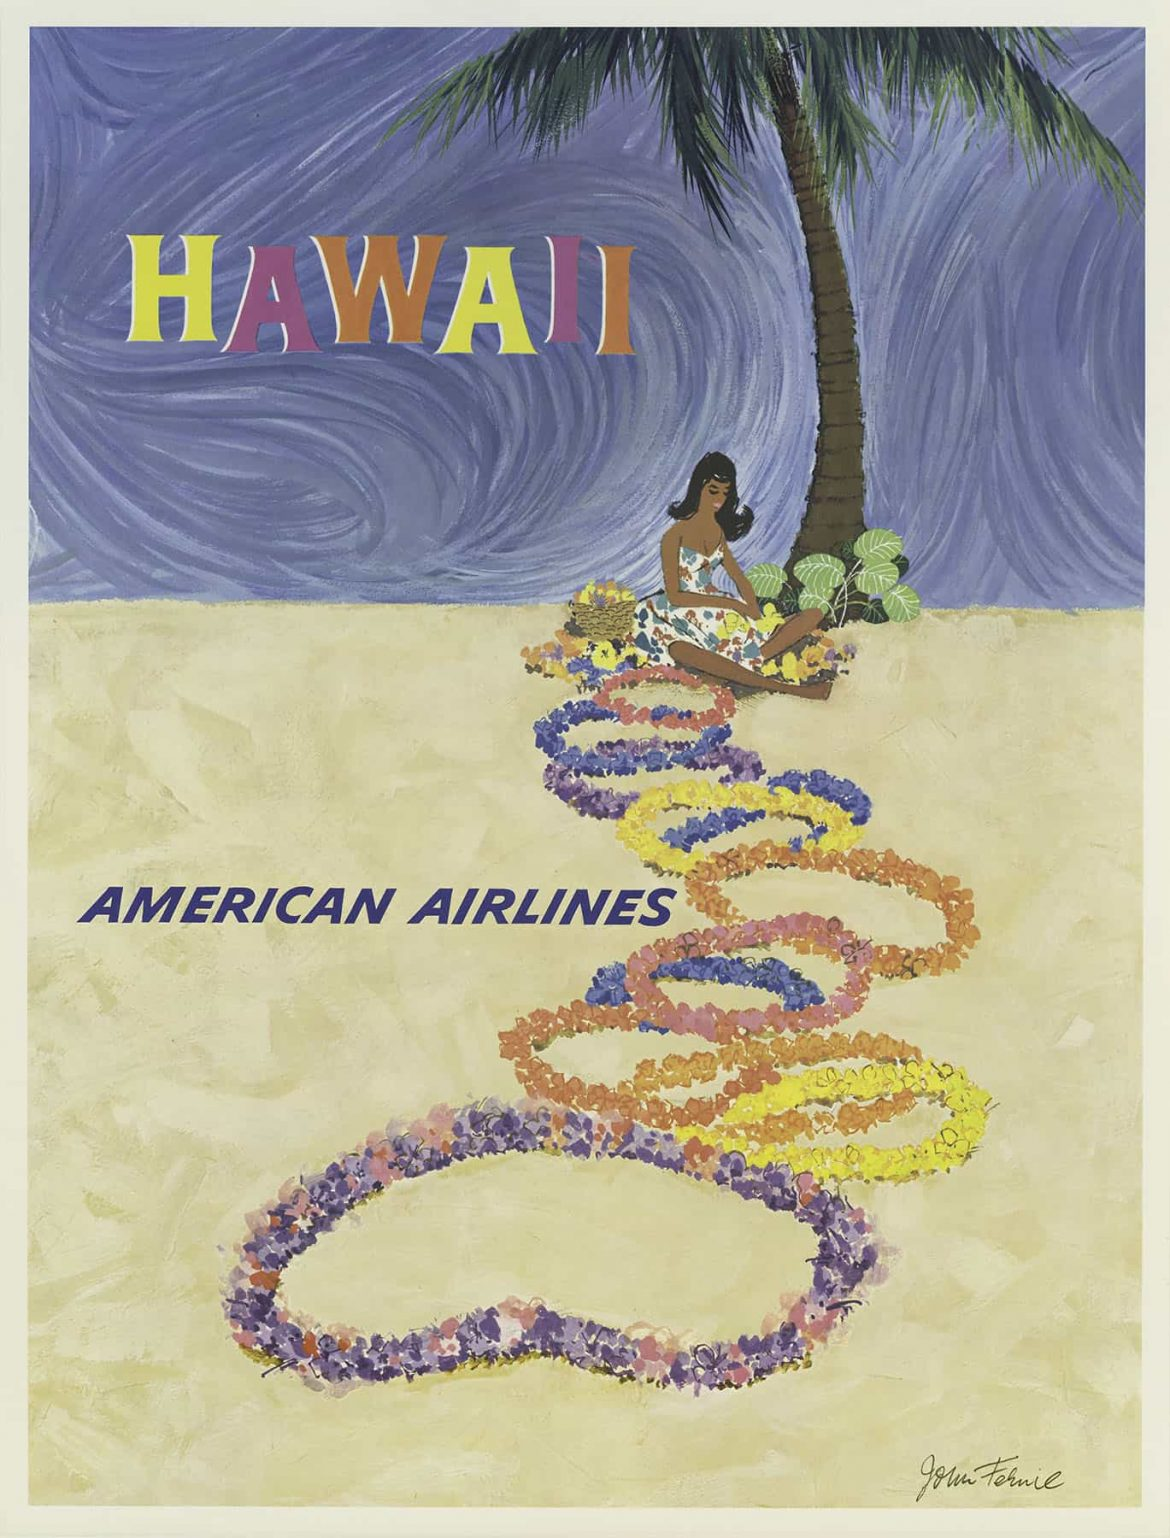 American Airlines Hawaii Poster By John Fernie